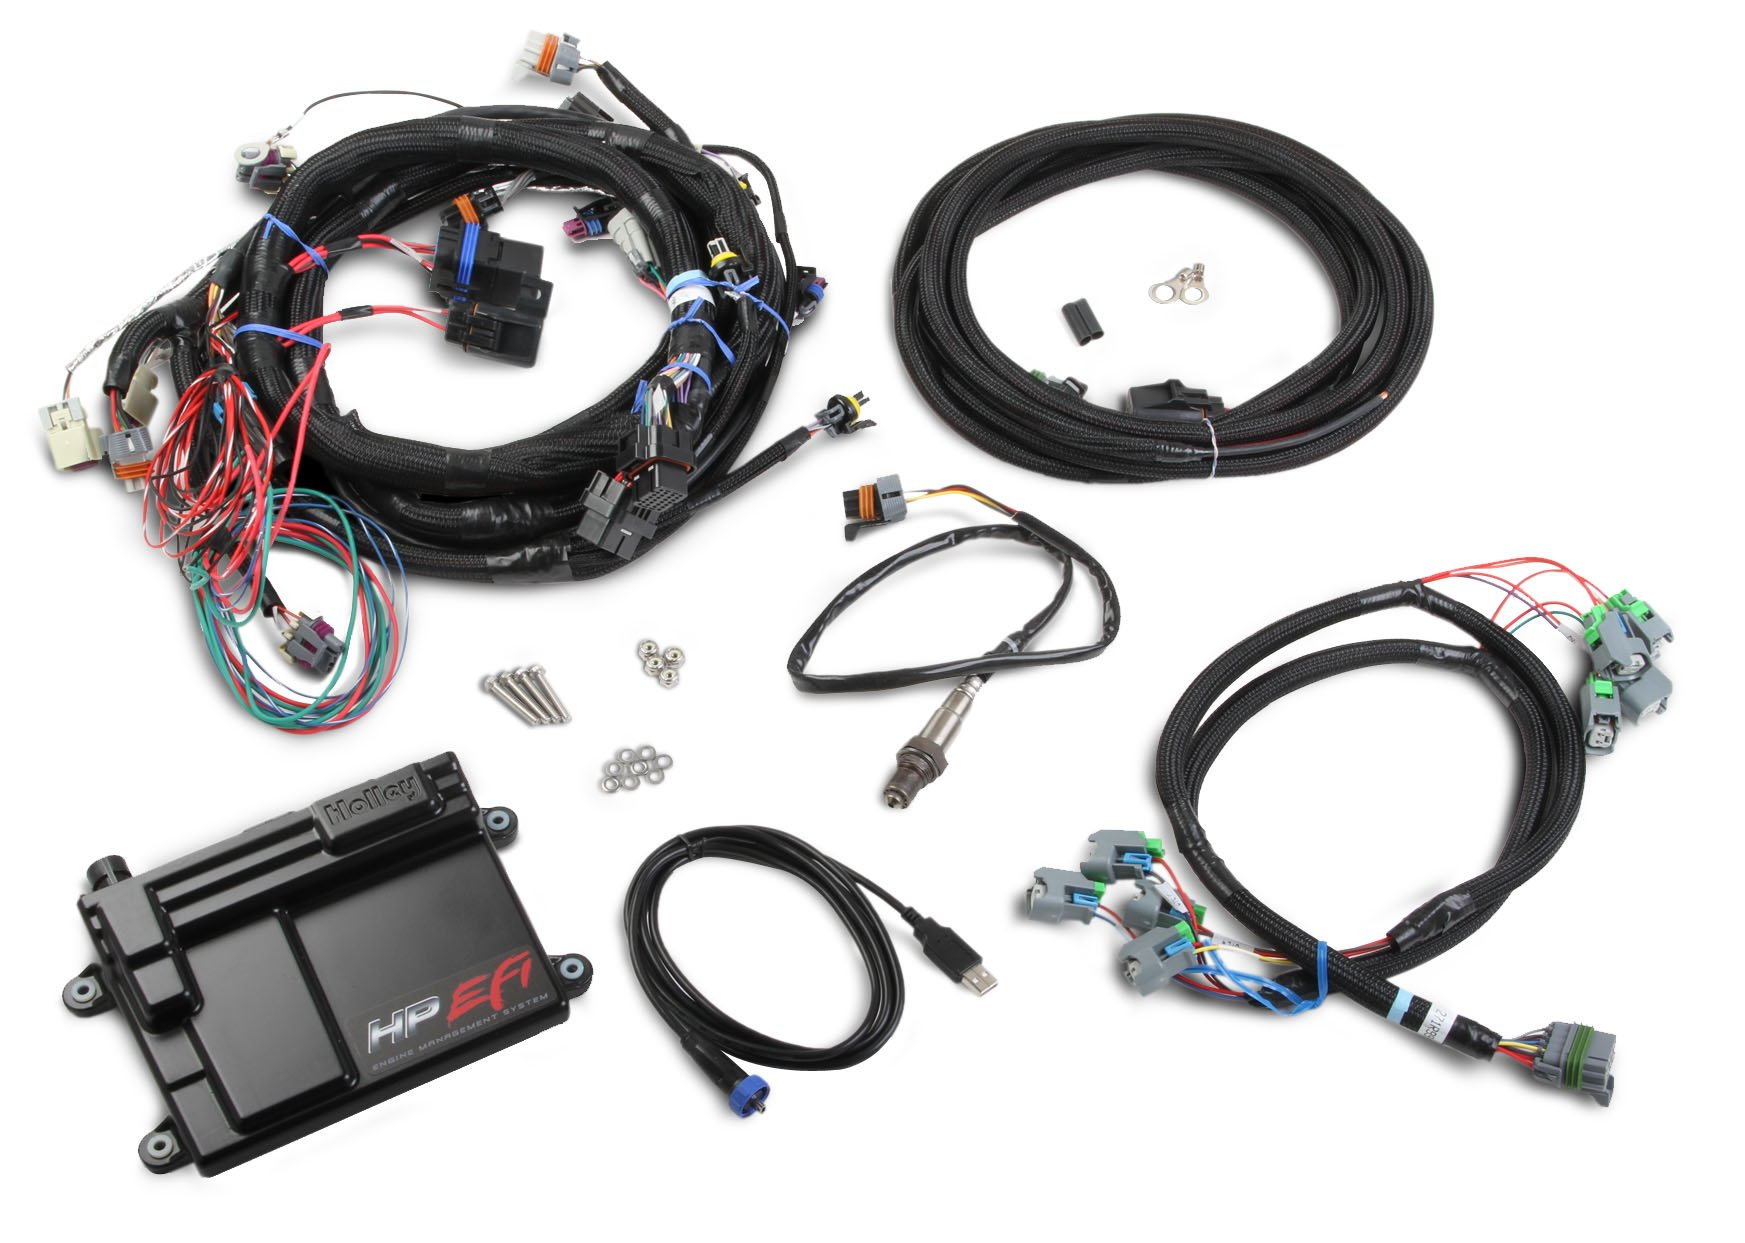 Ls7 Wiring Harness Ecu Pin Go Diagram Rb20det Holley Efi 550 603 Hp Kits Injectors